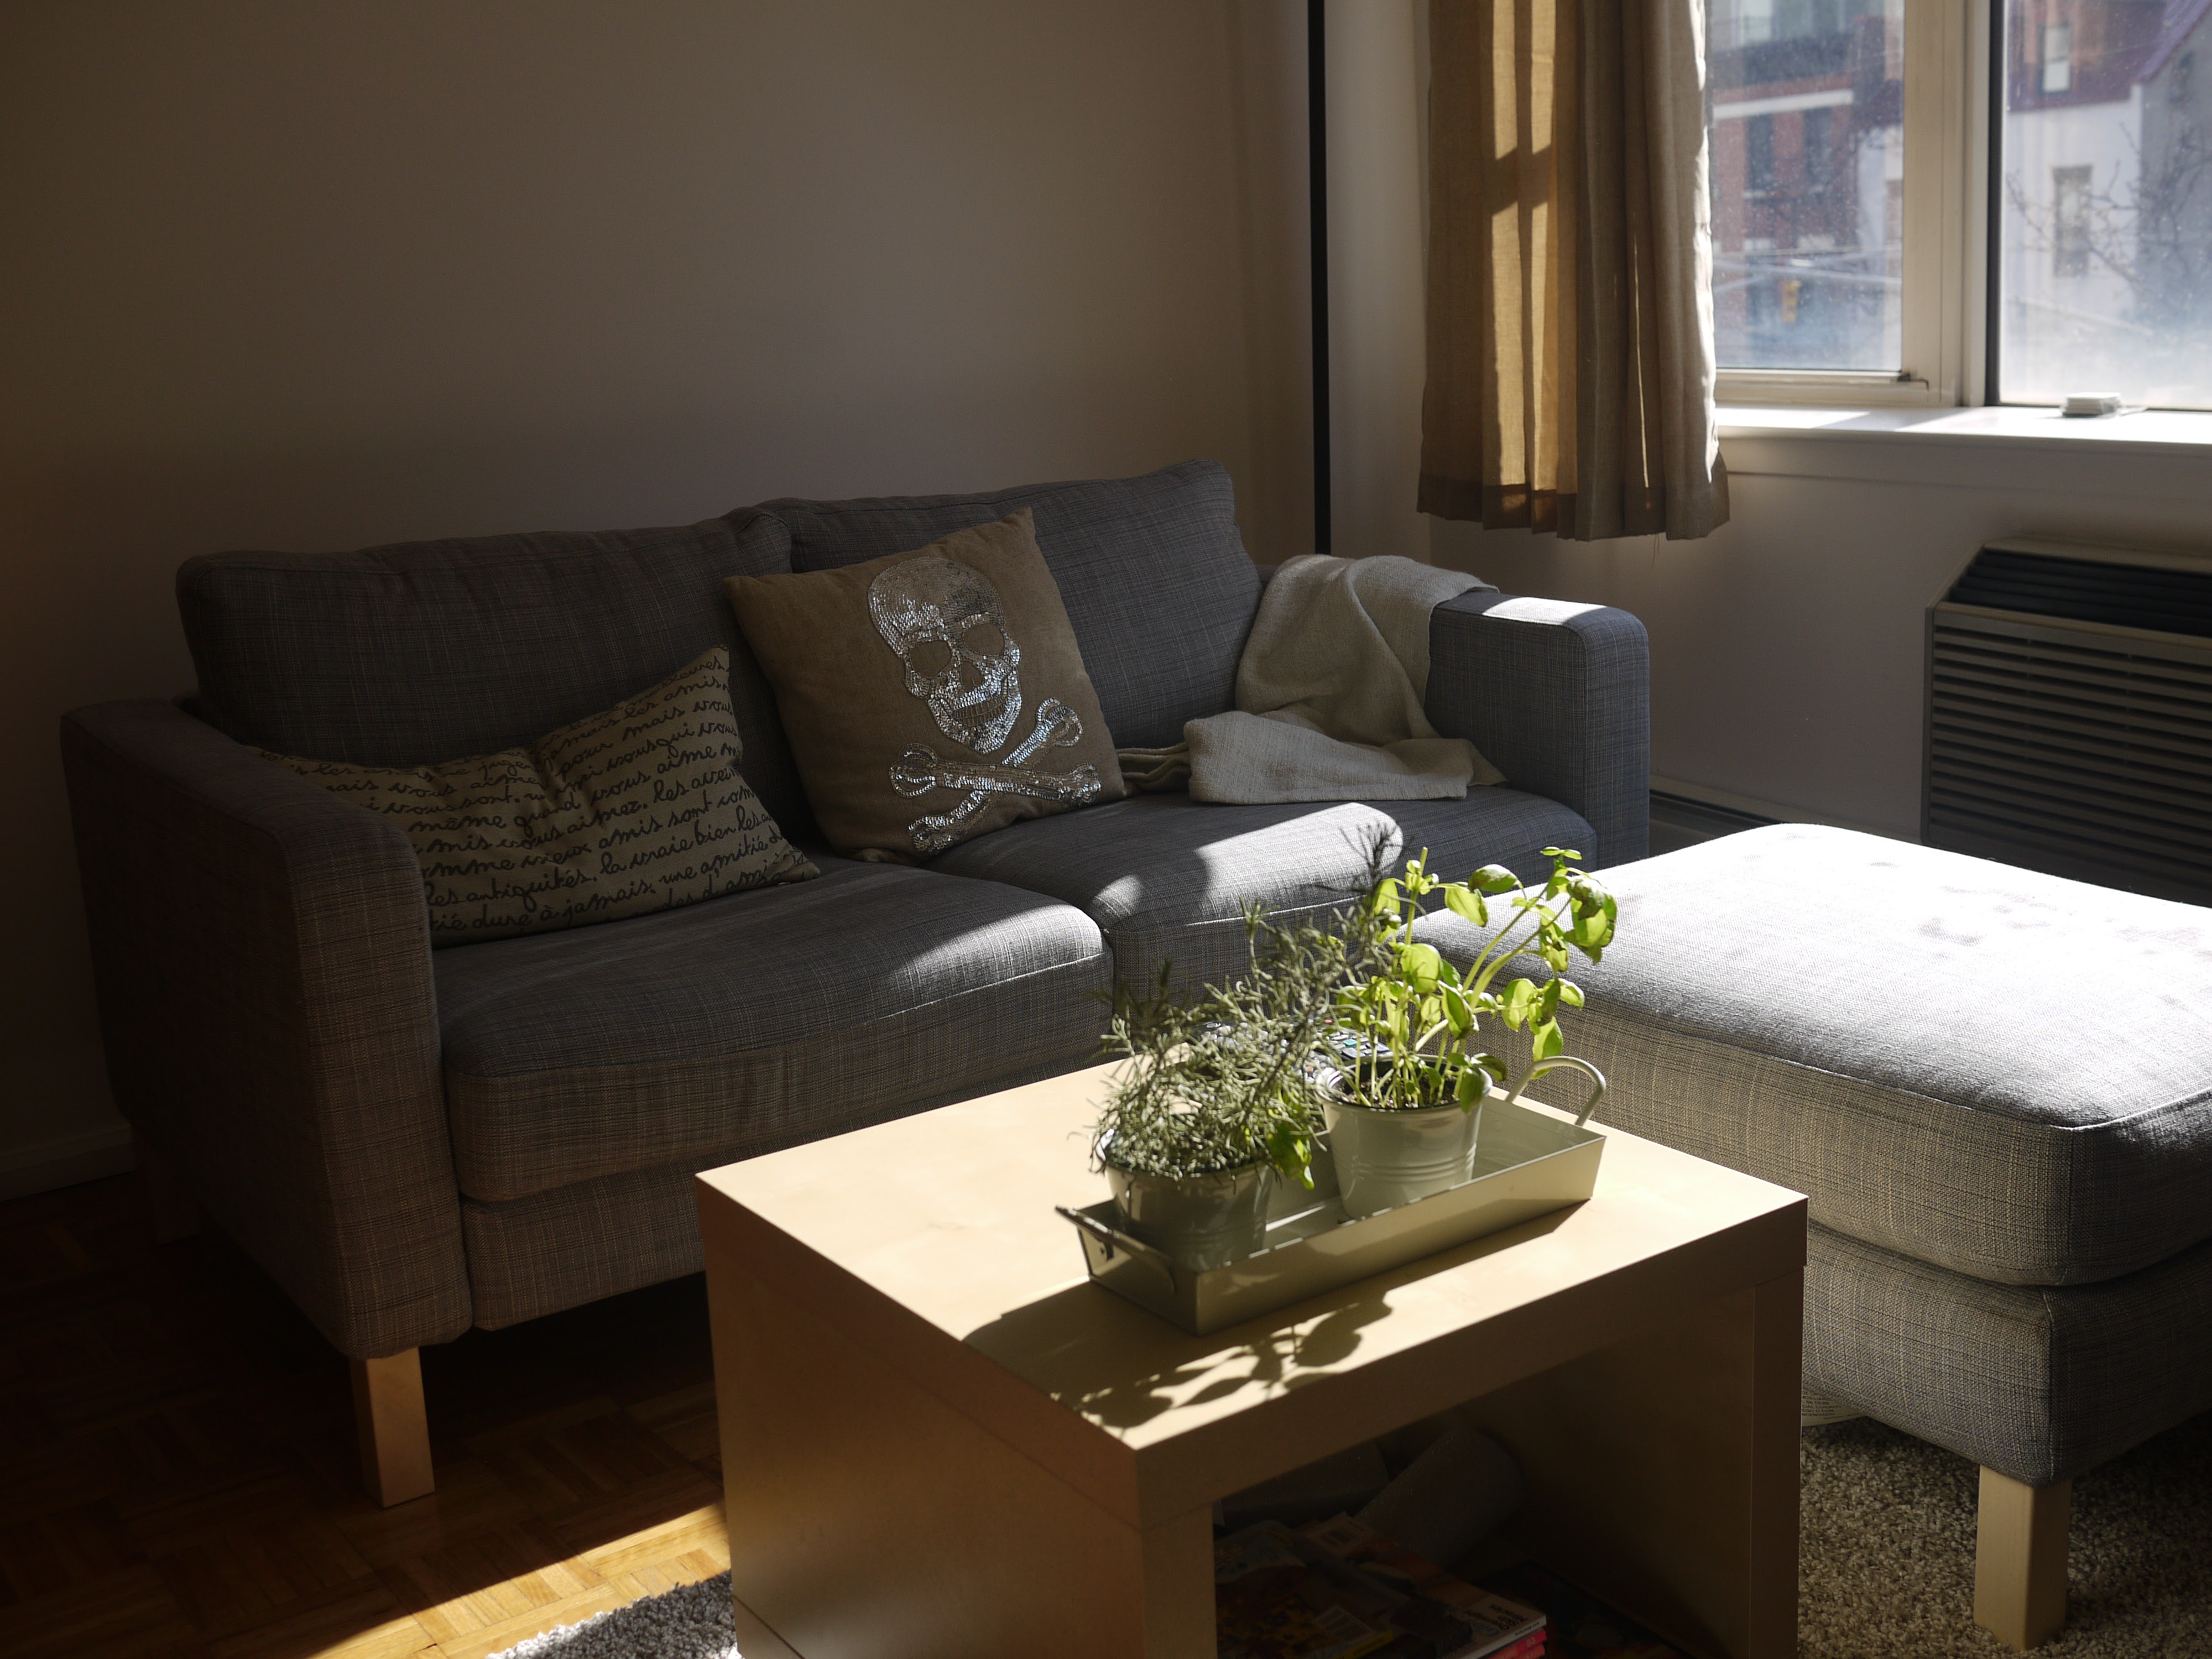 Ikea Karlstad couch and ottoman, Lack side table - Stuff ...